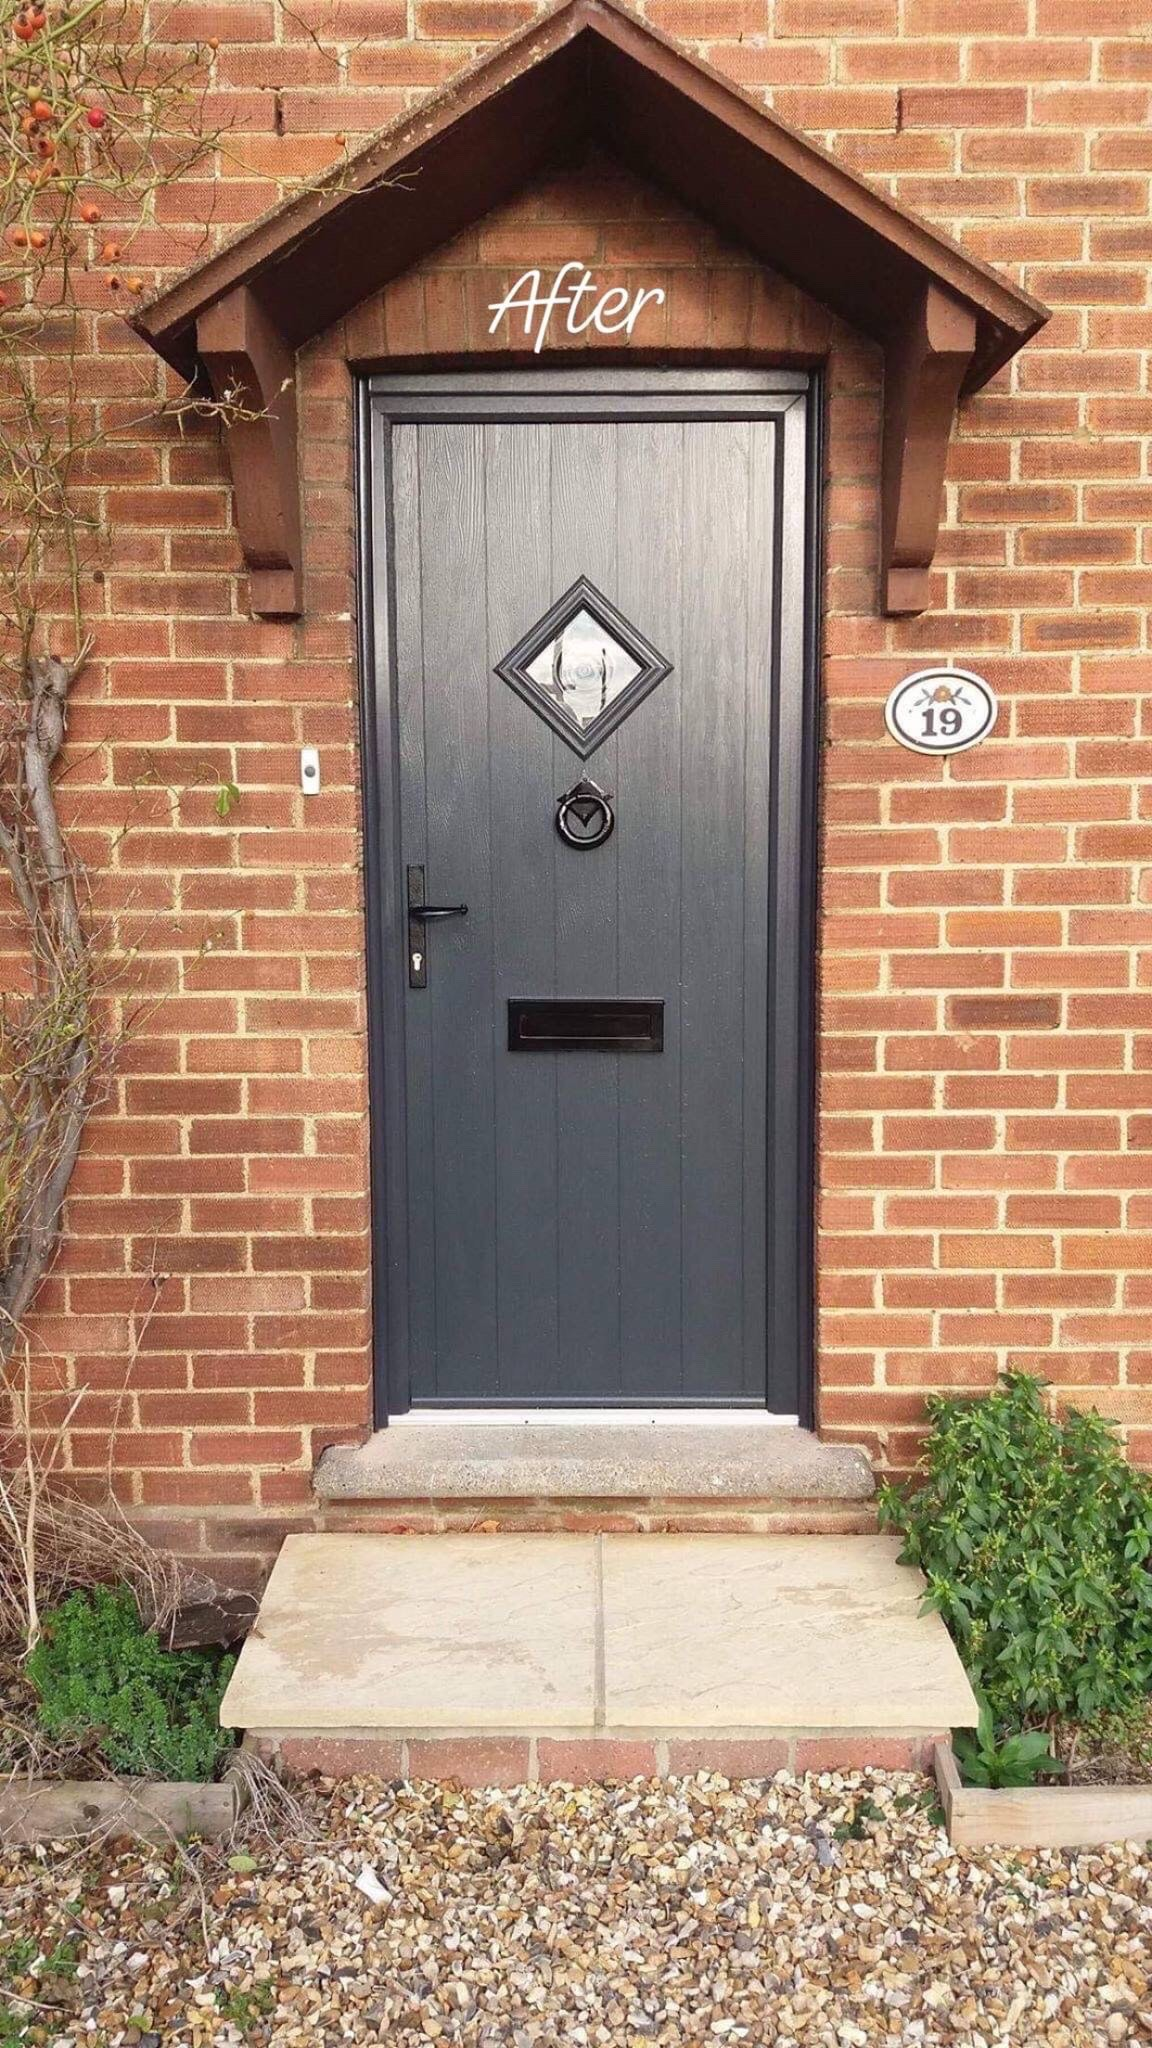 Composite door installed in Aller Park